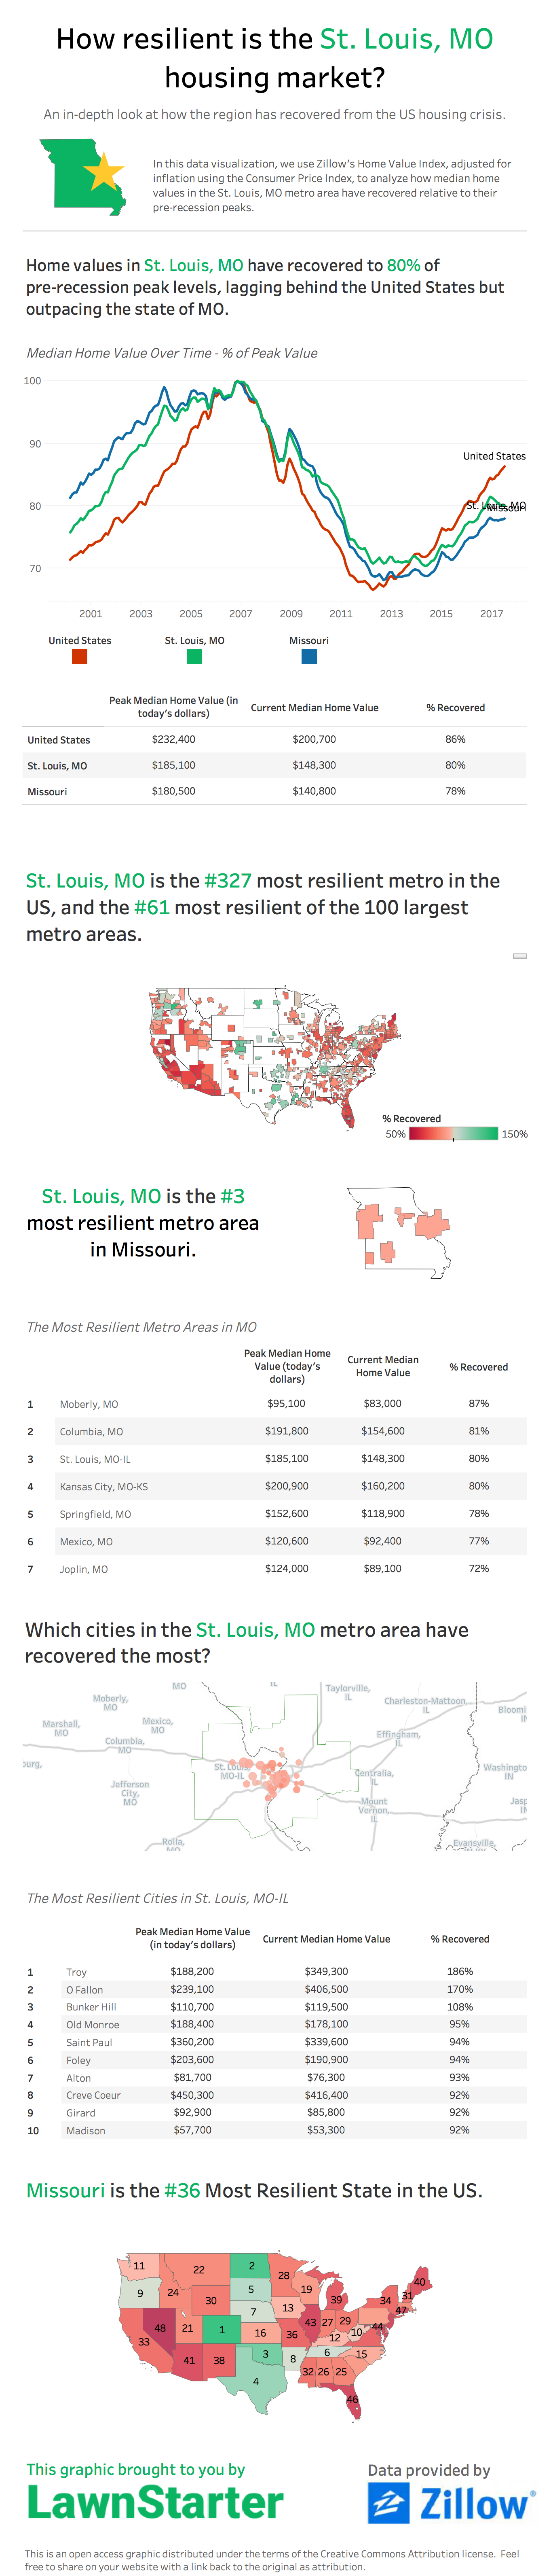 How resilient is the St. Louis, MO housing market? by Lawnstarter.com